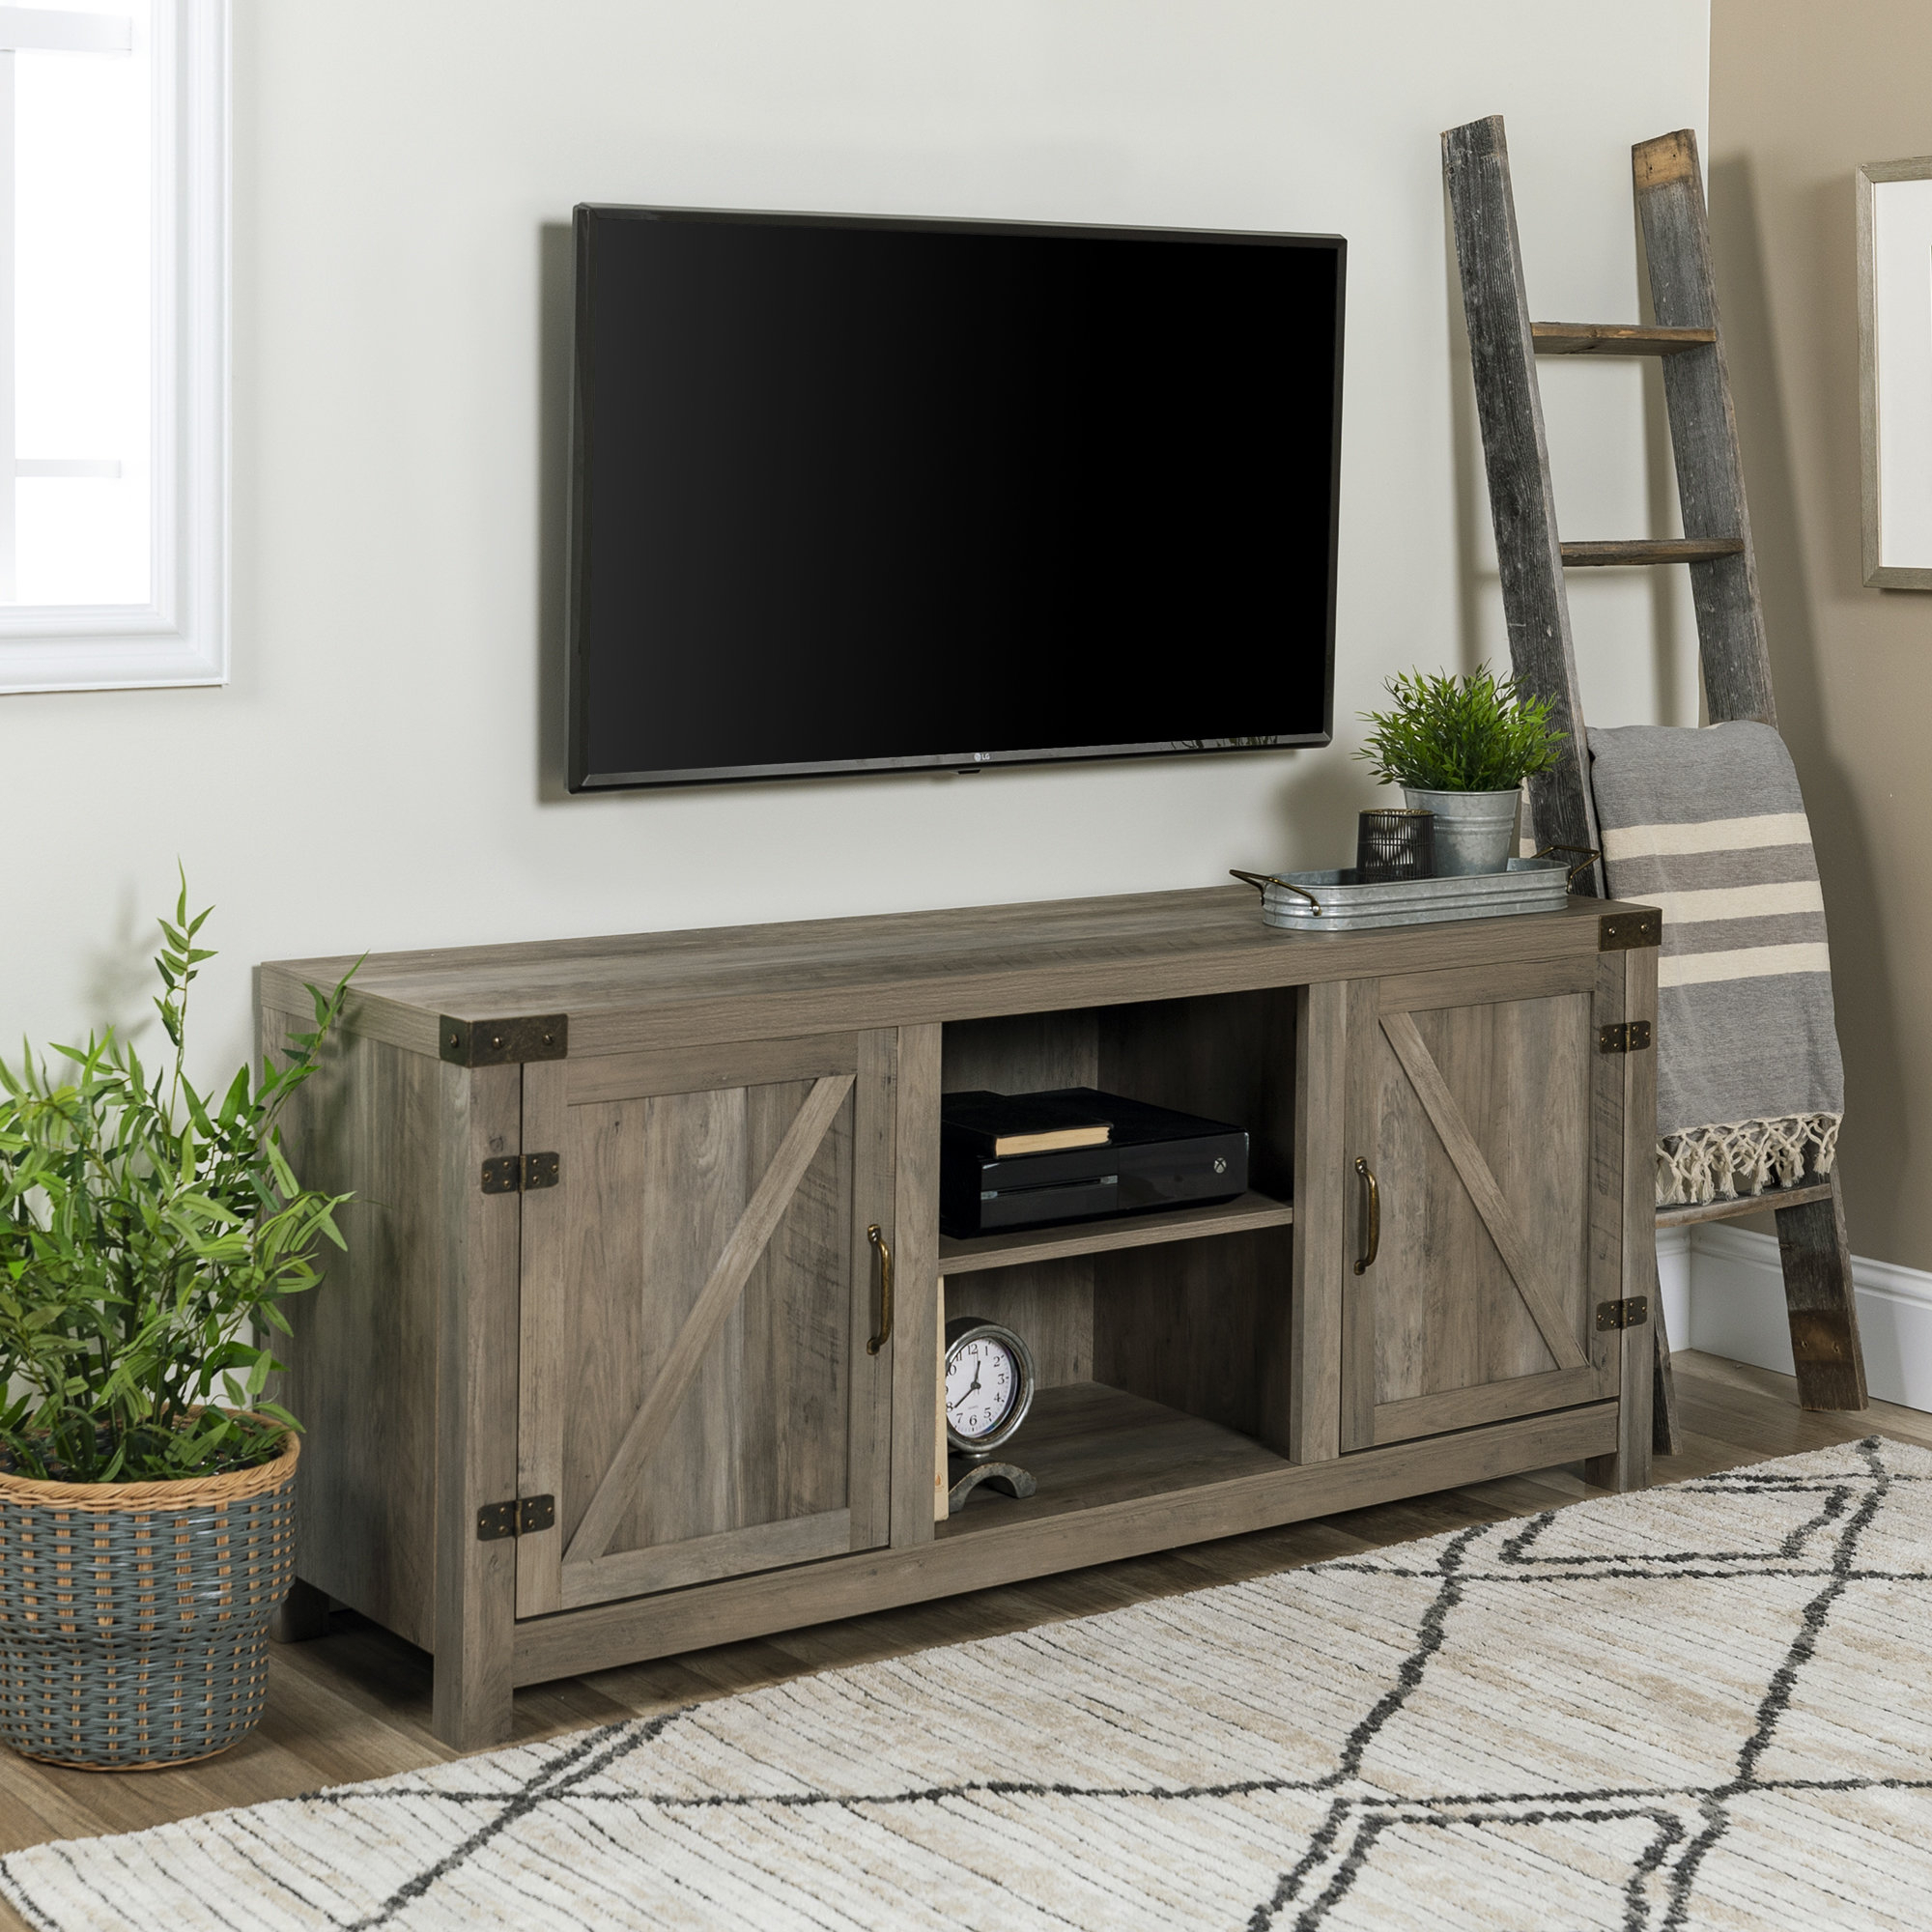 Tv Stands You'll Love | Wayfair (View 4 of 30)